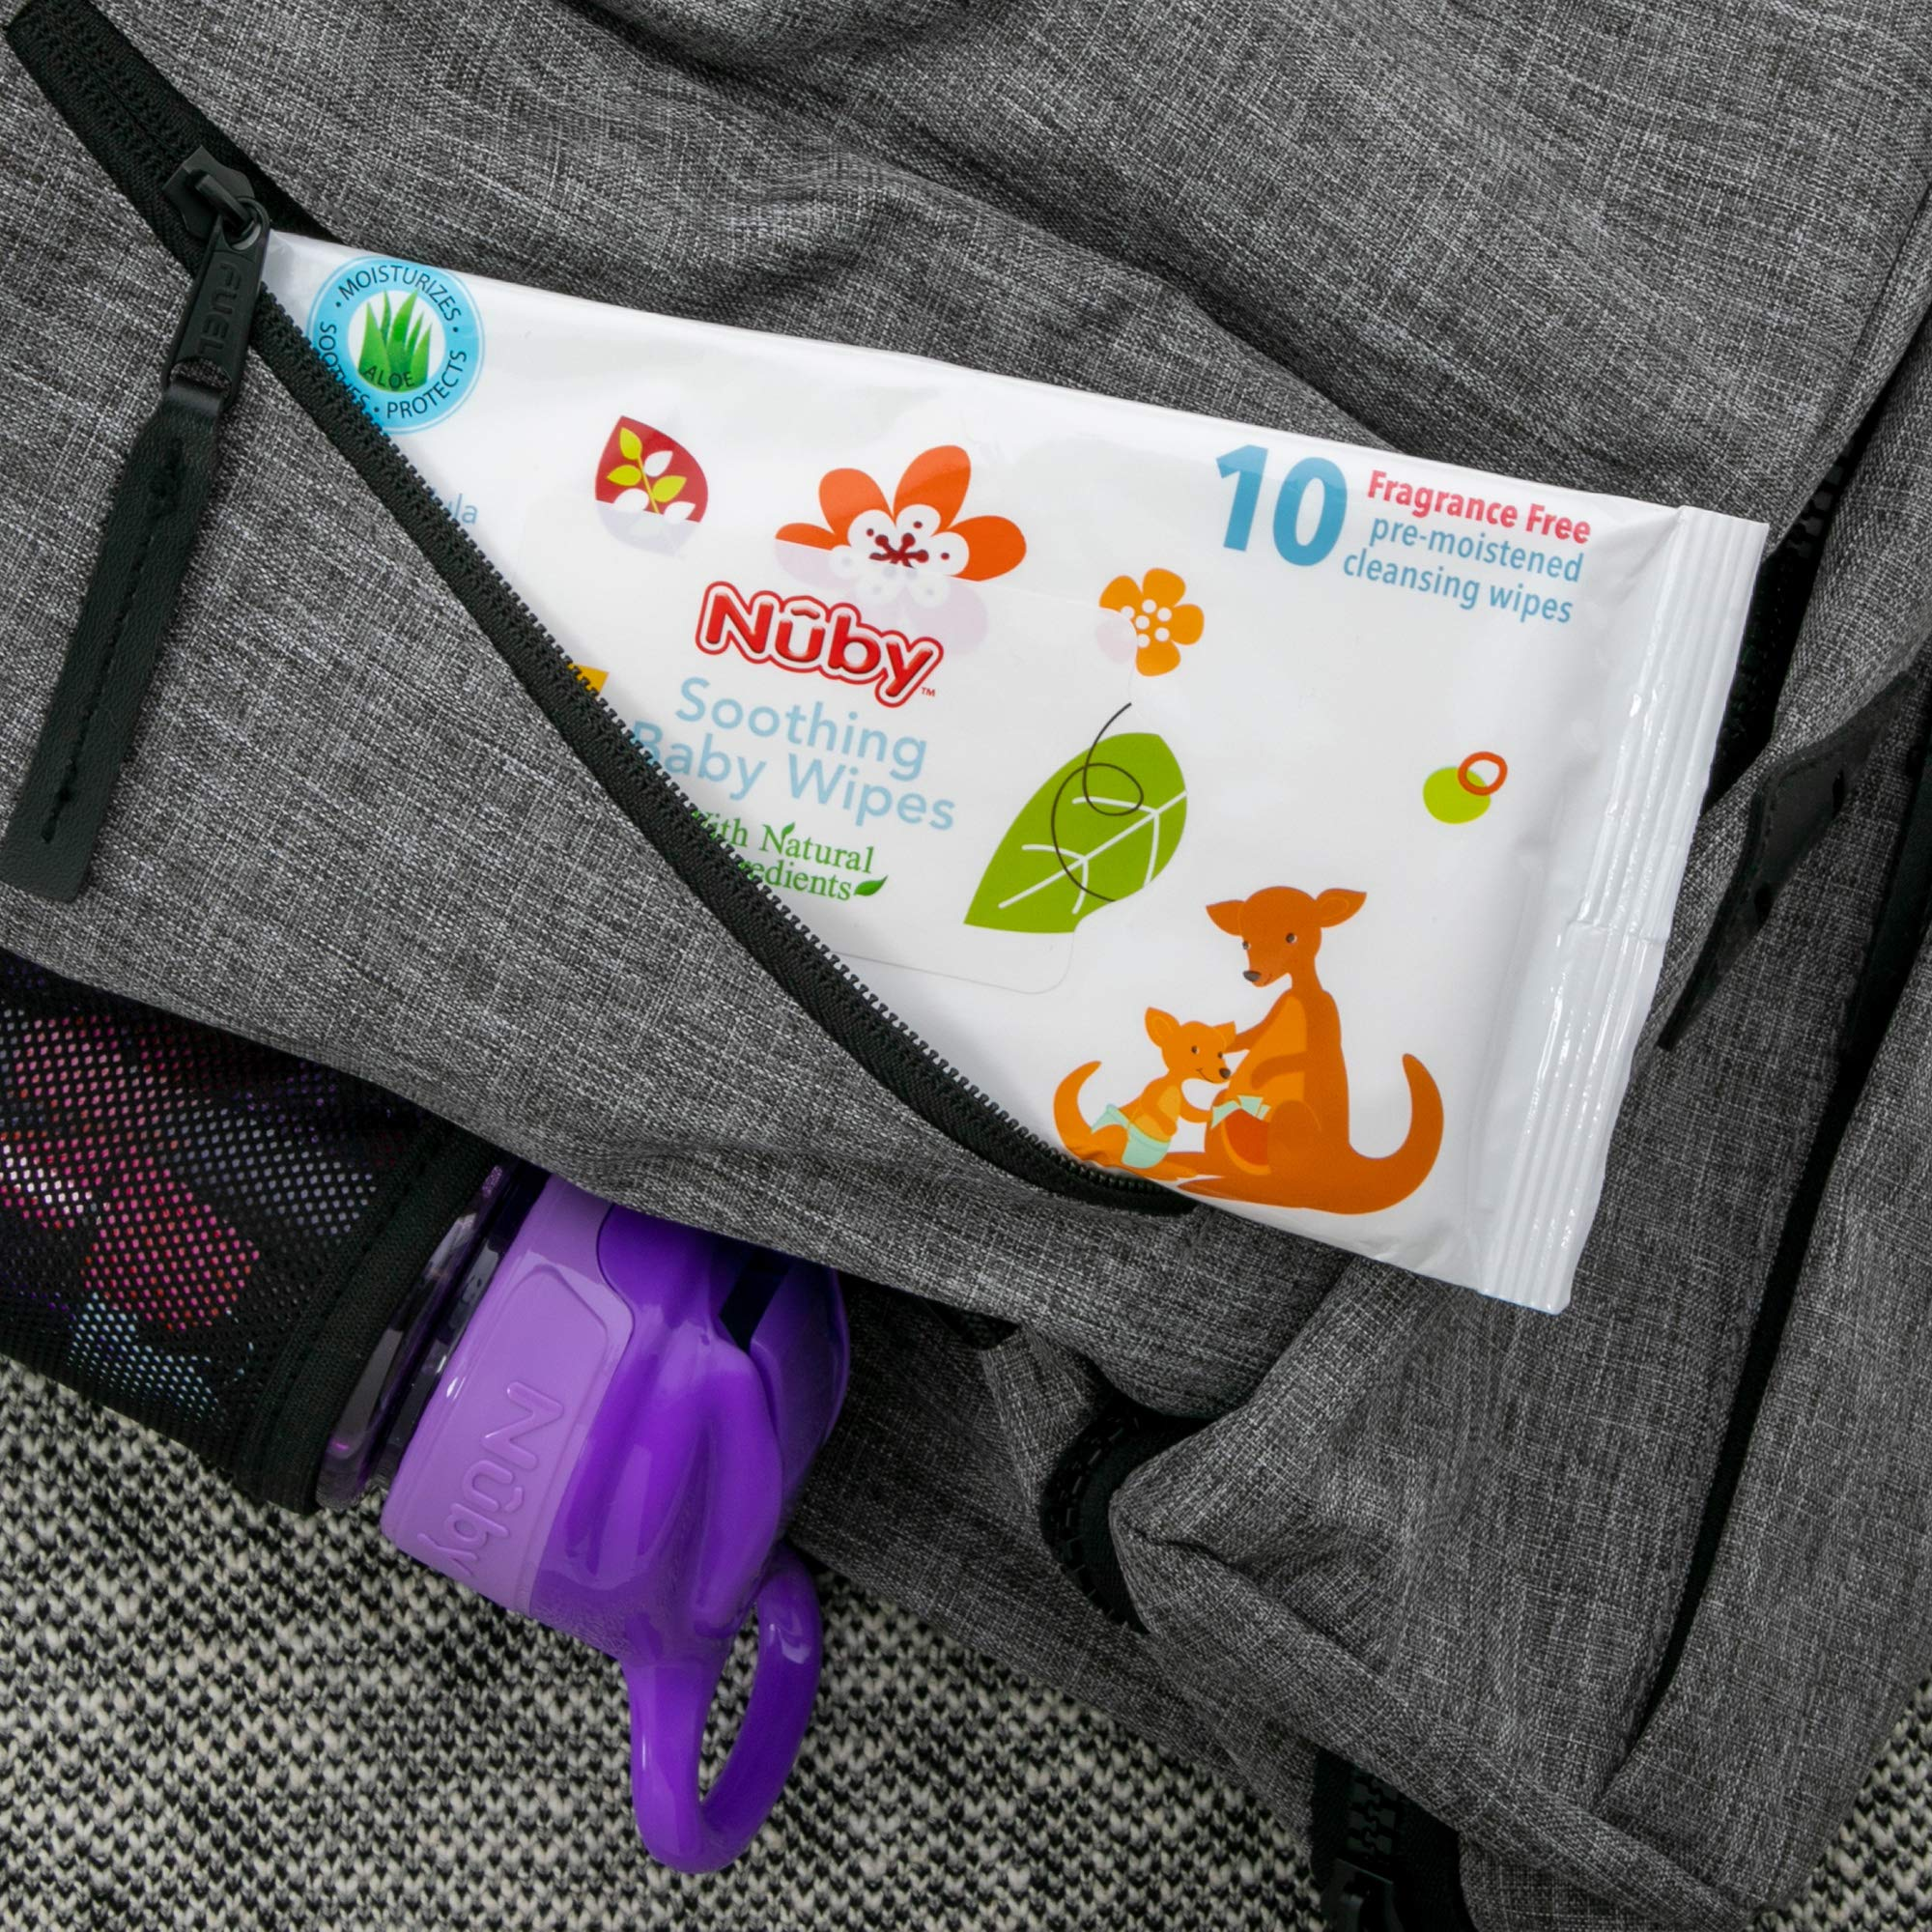 Nuby Natural Soothing Baby Wipes with Chamomile & Aloe, Fragrance Free, Extra Thick, 240 Count (62001)